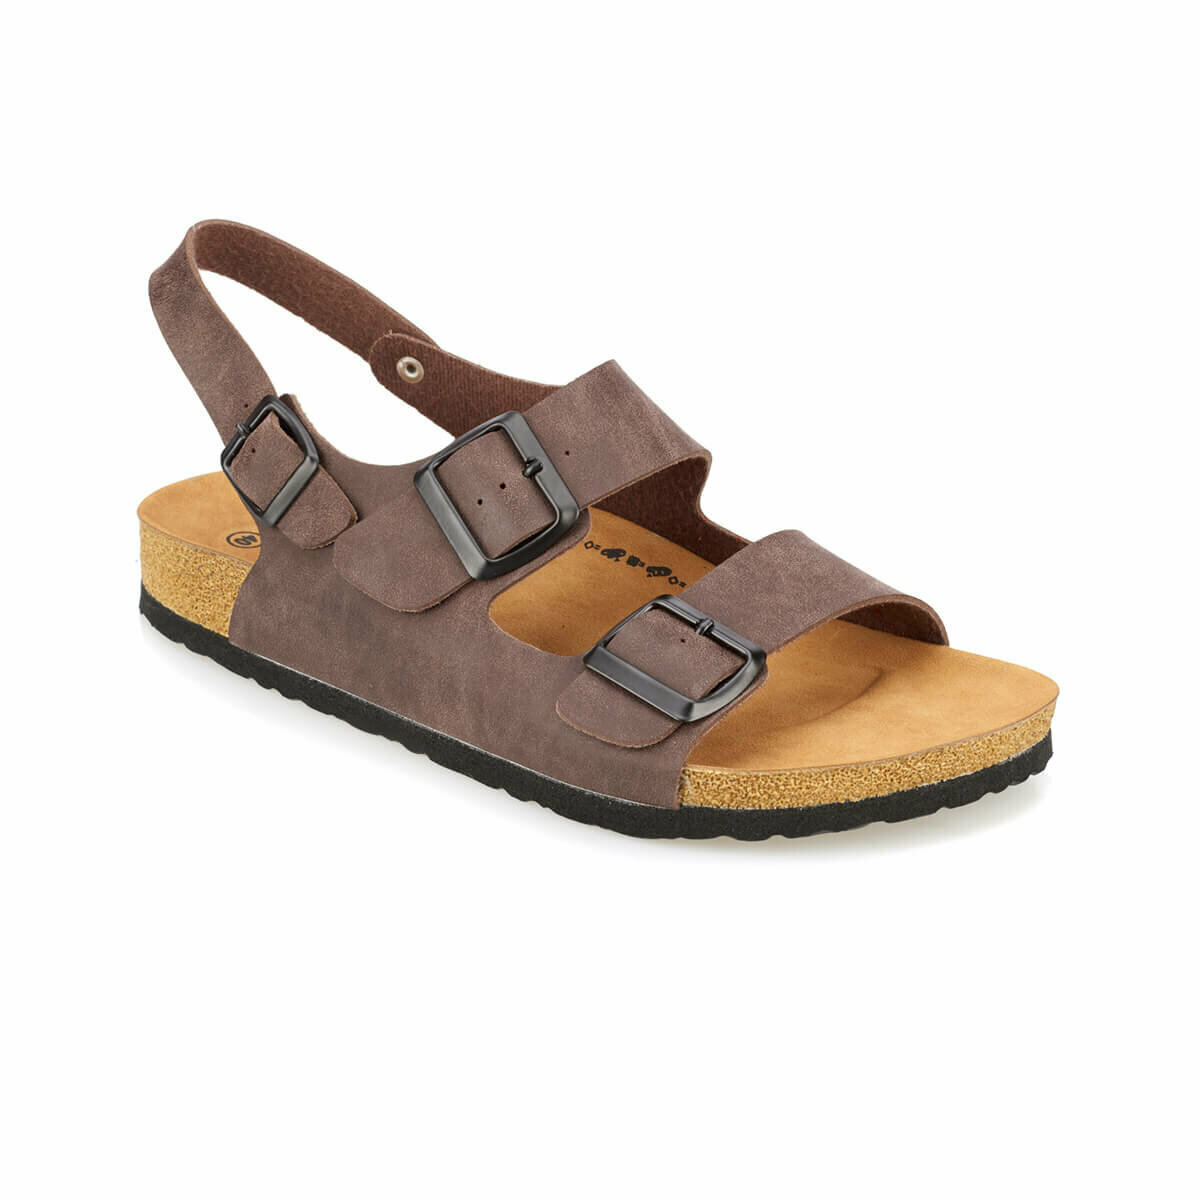 FLO Men Sandals Summer Season Comfortable Fashion Brown Male Sandals Мужские сандалии FEDON KINETIX